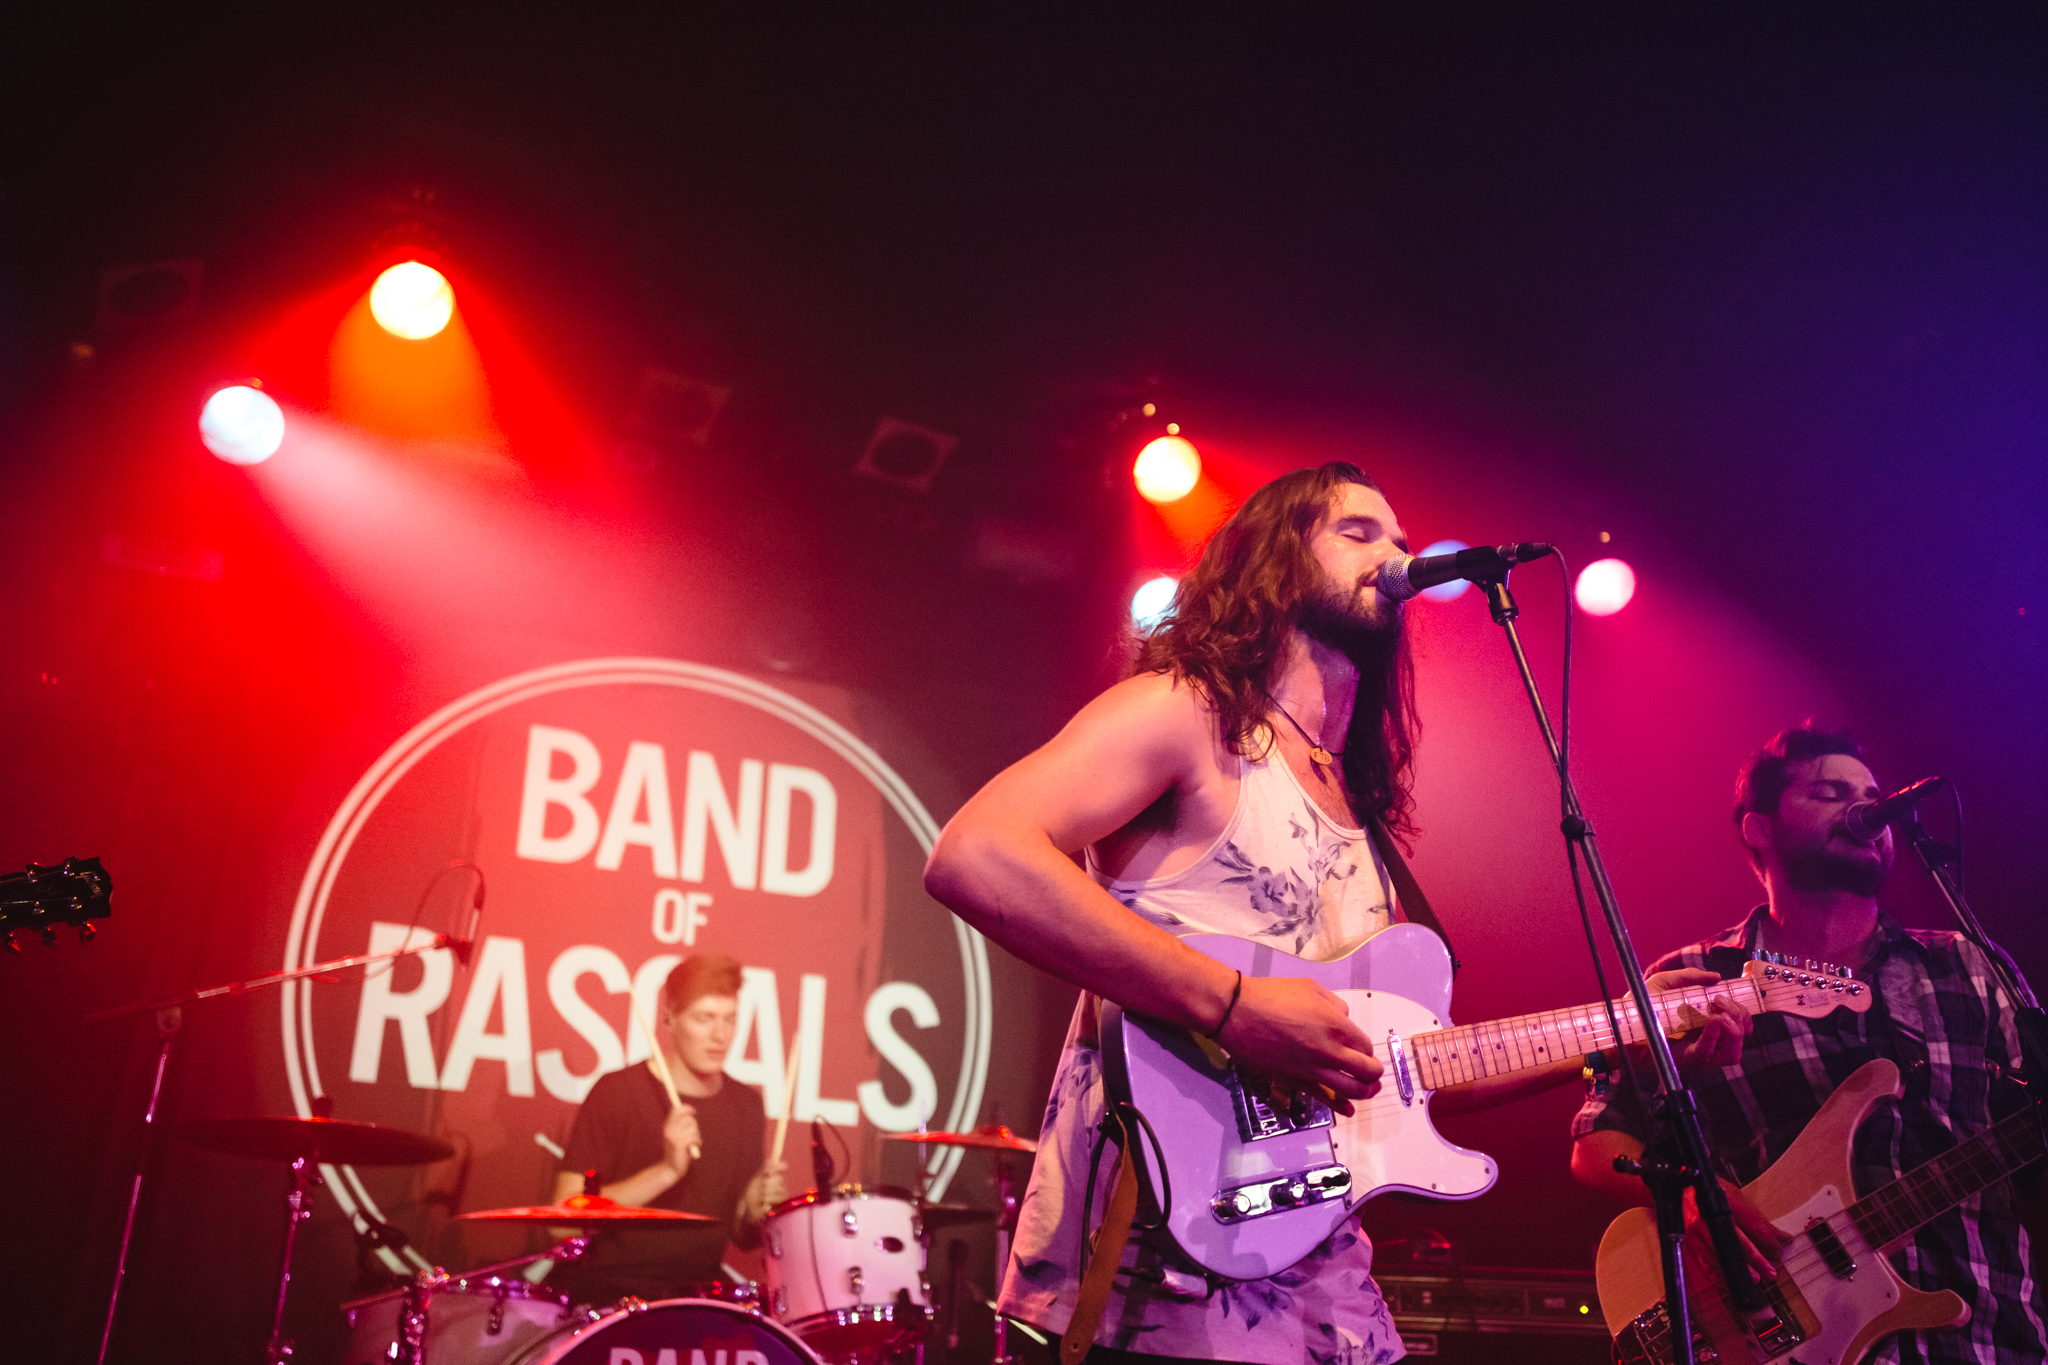 Band Of Rascals - photo by Lindsey Blane